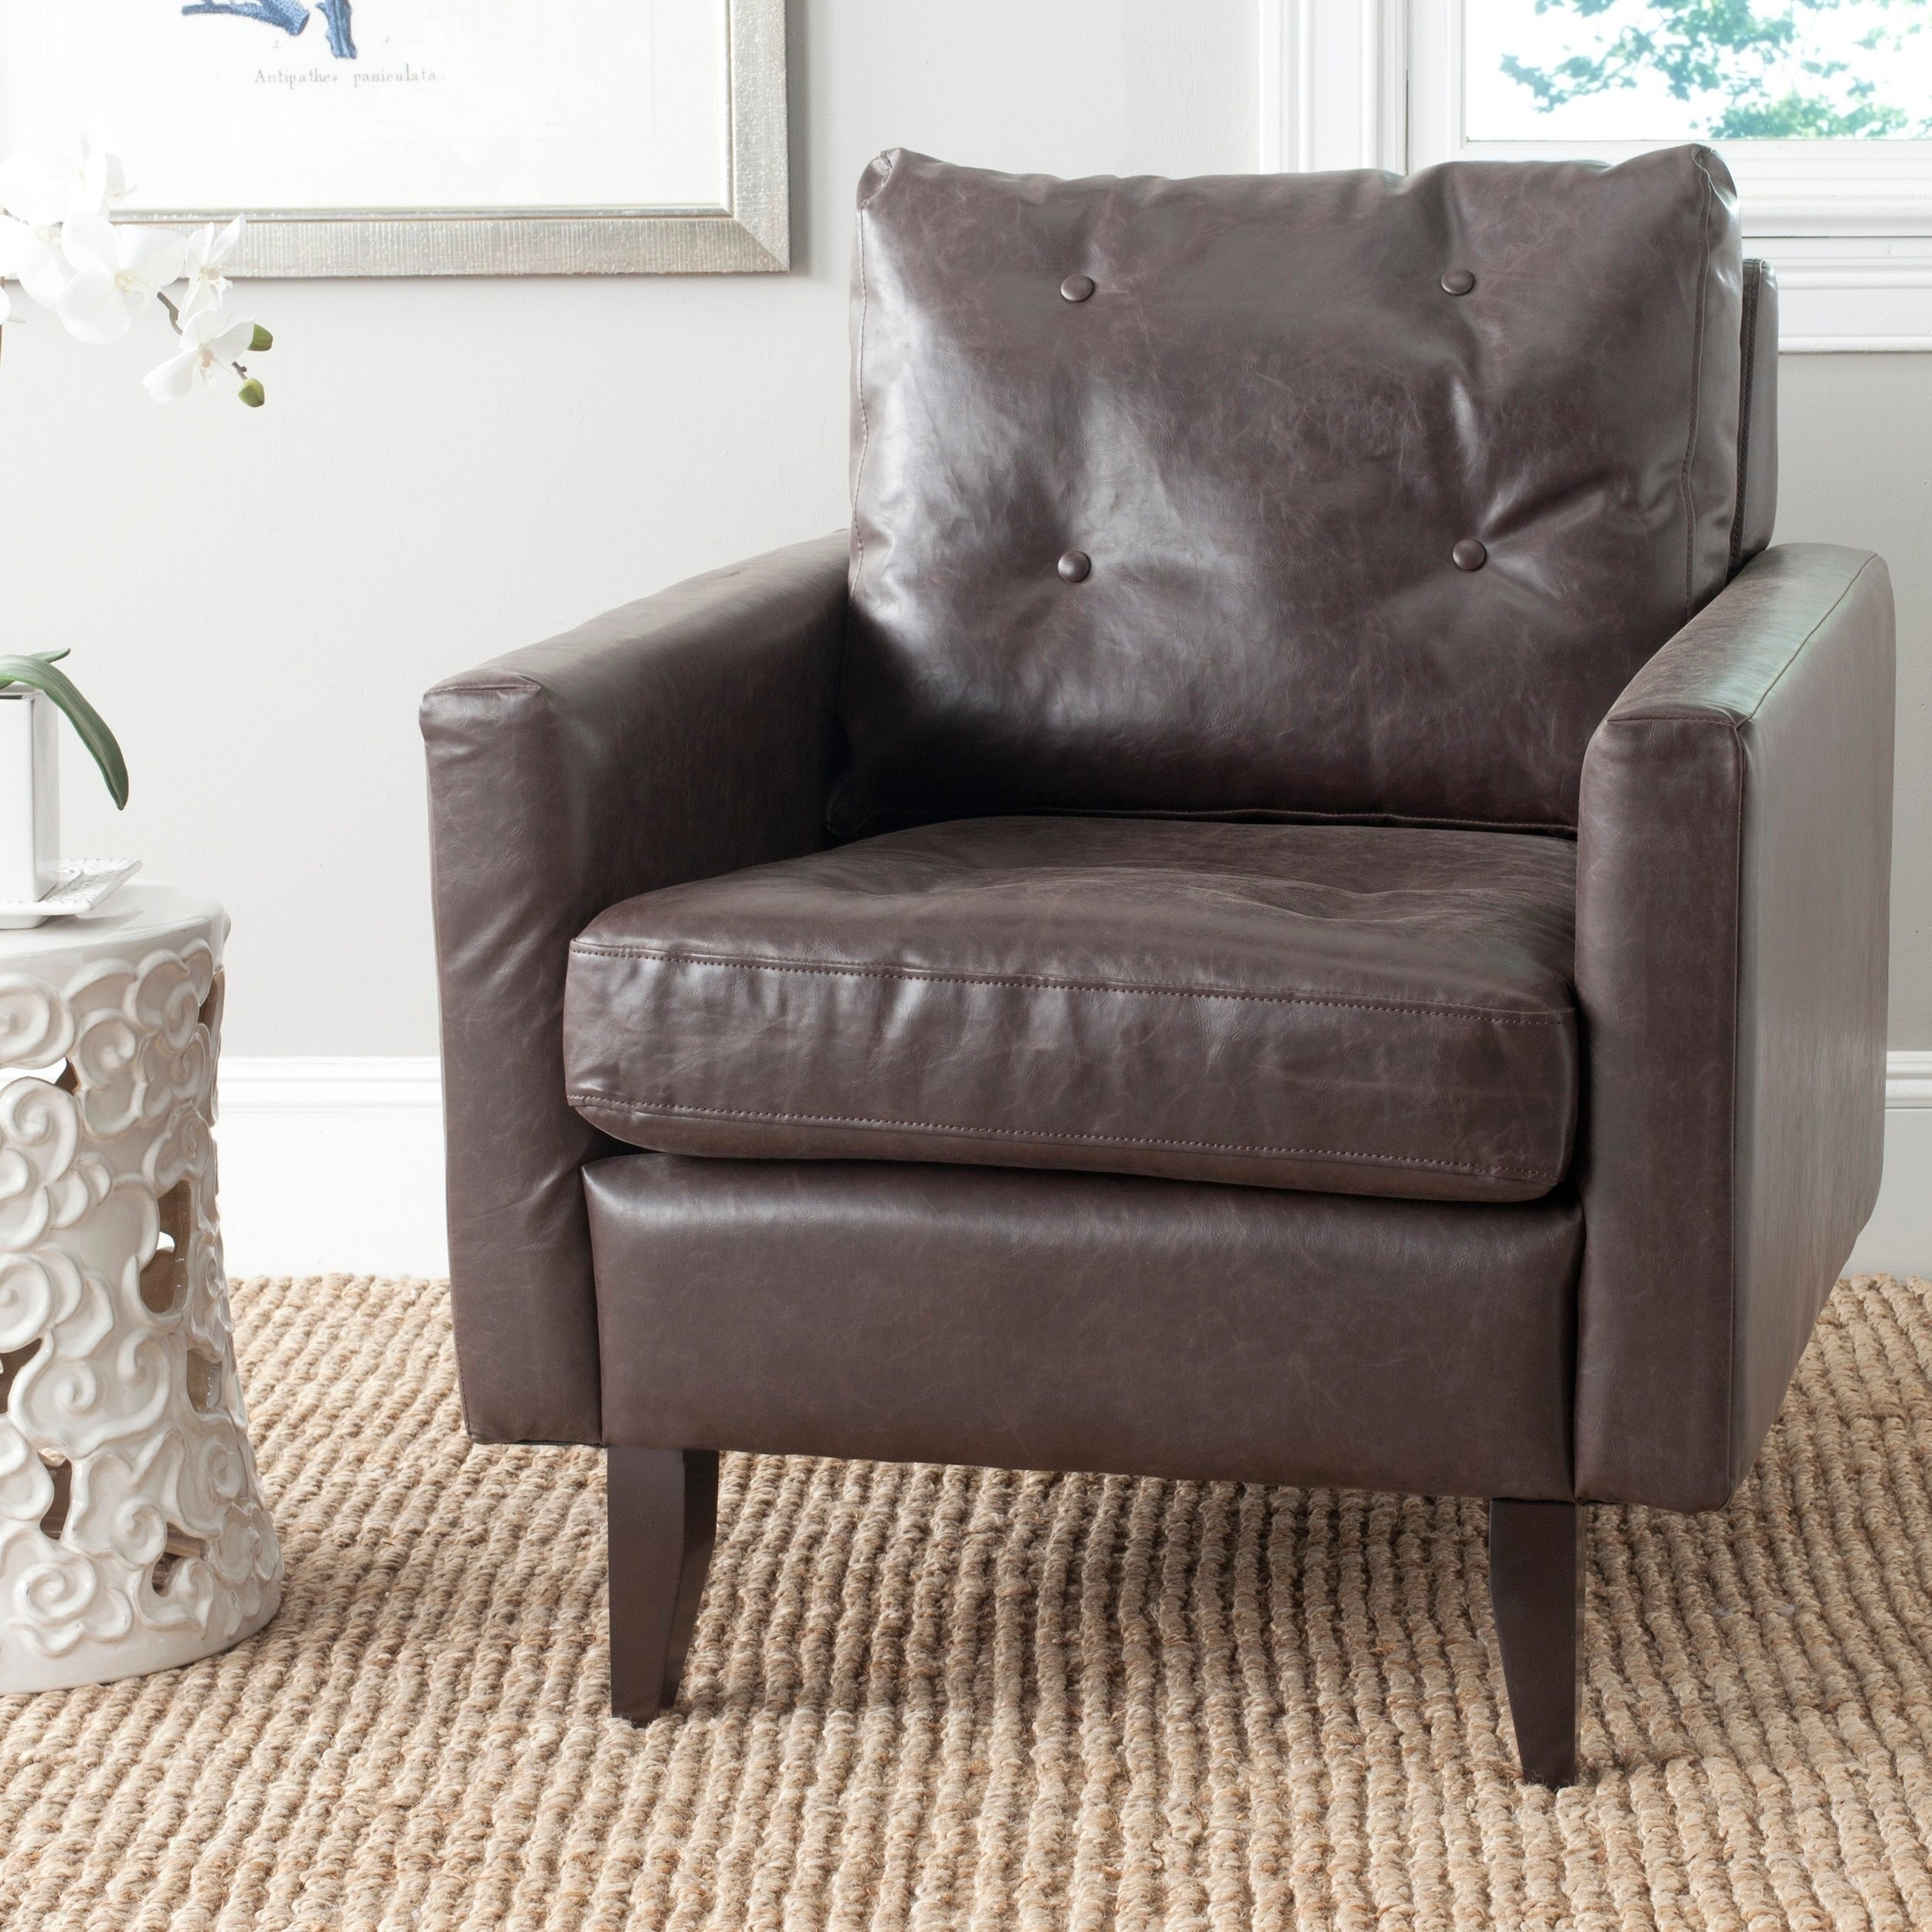 Fantastic Club Chairs Leather Living Room Chairs Shop Online At Bralicious Painted Fabric Chair Ideas Braliciousco